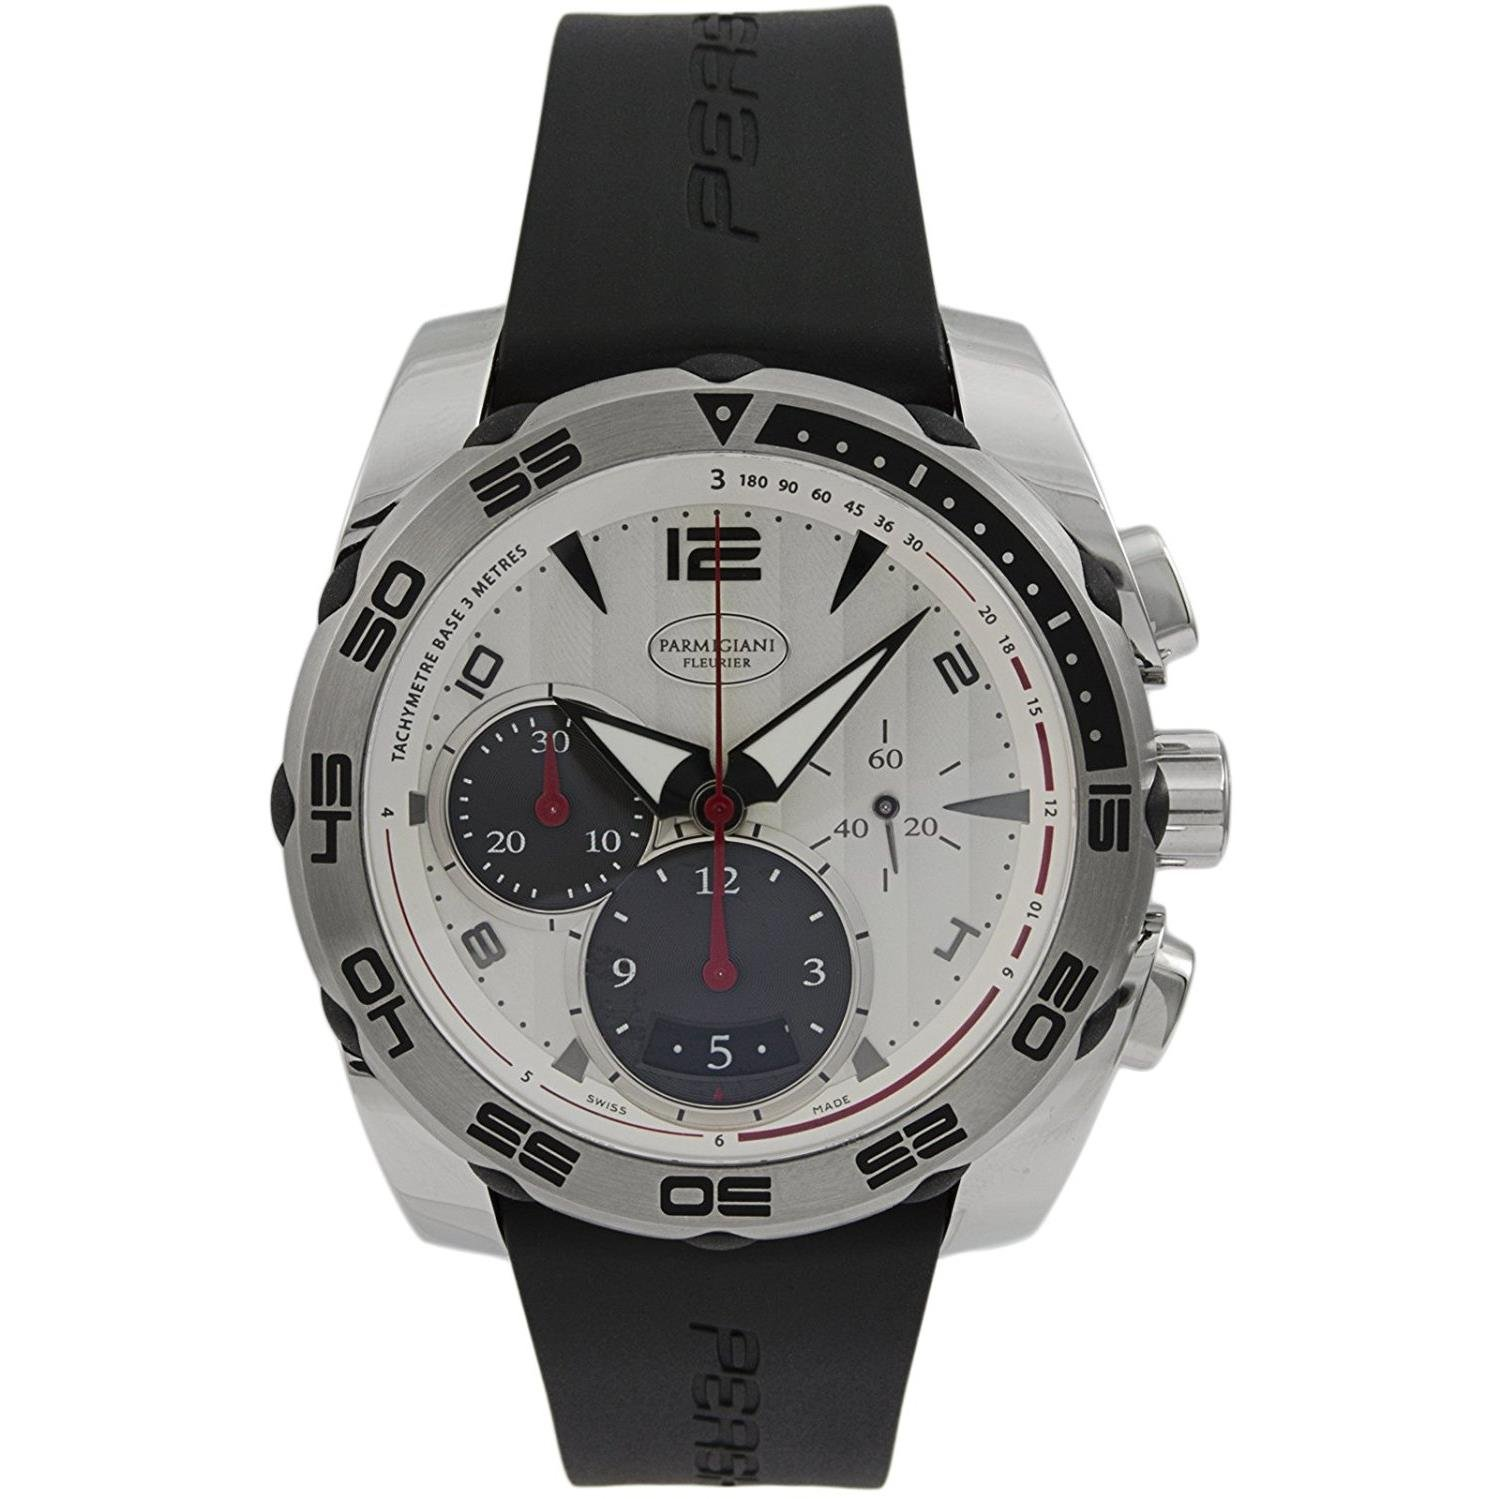 Parmigiani Fleurier Pershing 002 Mens Automatic Chronograph Watch - 42mm Analog Silver Face with Second Hand, Date, Chrono and Tachymeter Scale - Black Rubber Band Swiss Made Waterproof Watch for Men